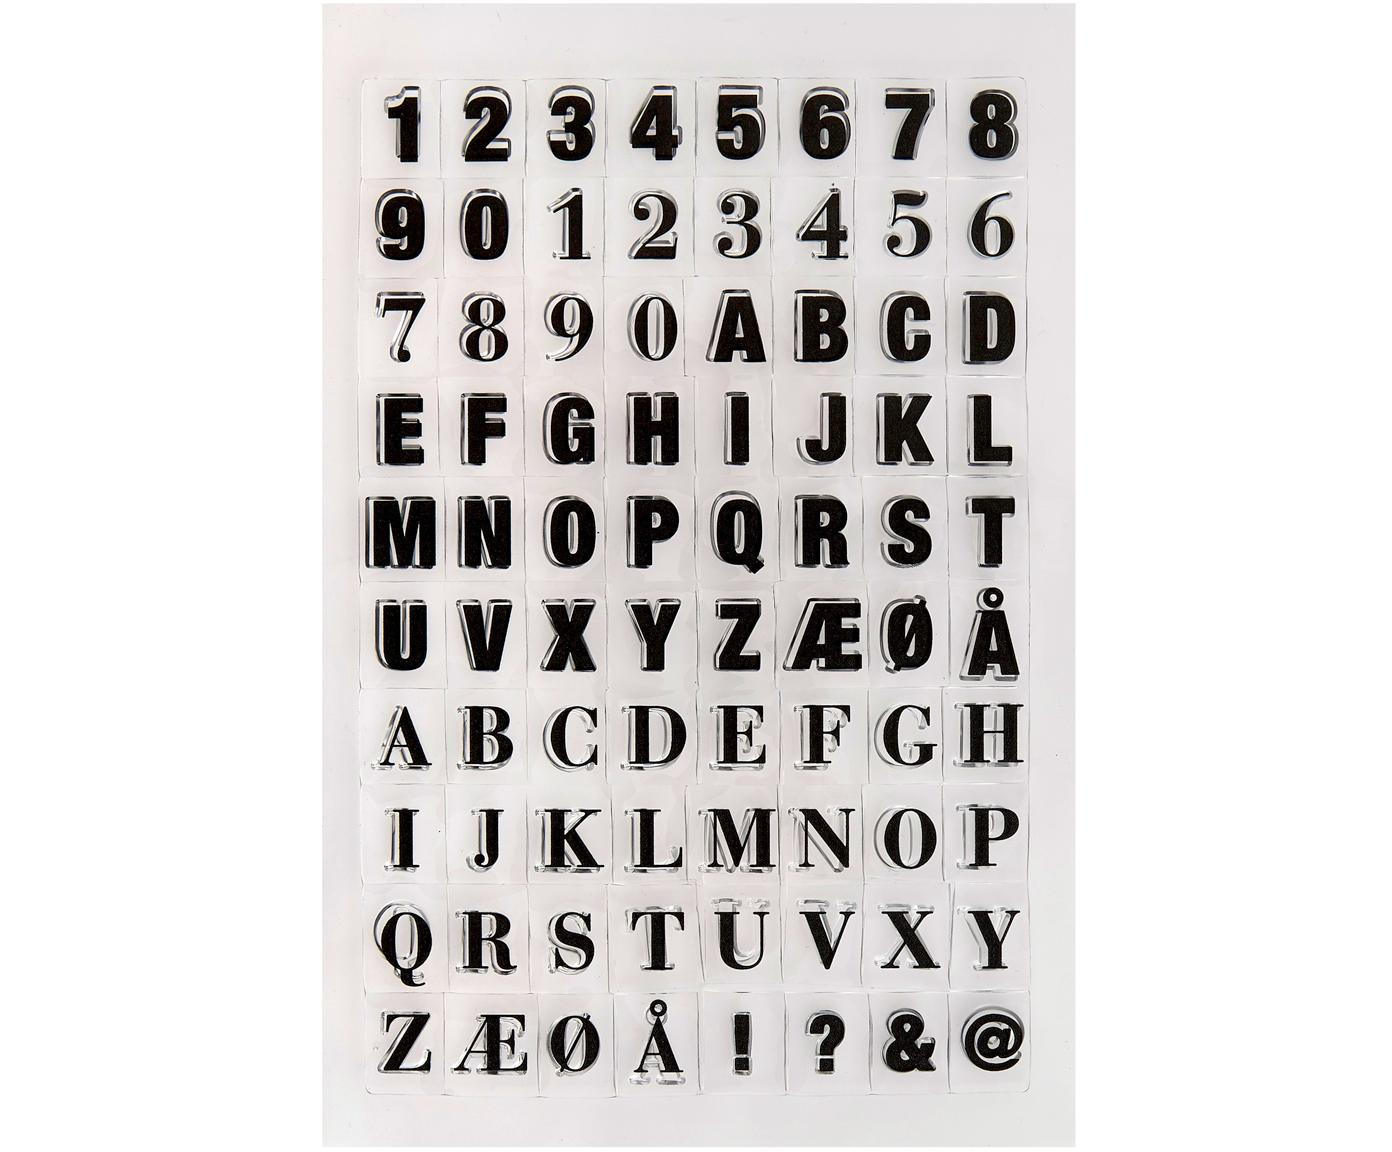 Stempelpatronenset Letters & Numbers, Siliconen, Zwart, transparant, 14 x 21 cm